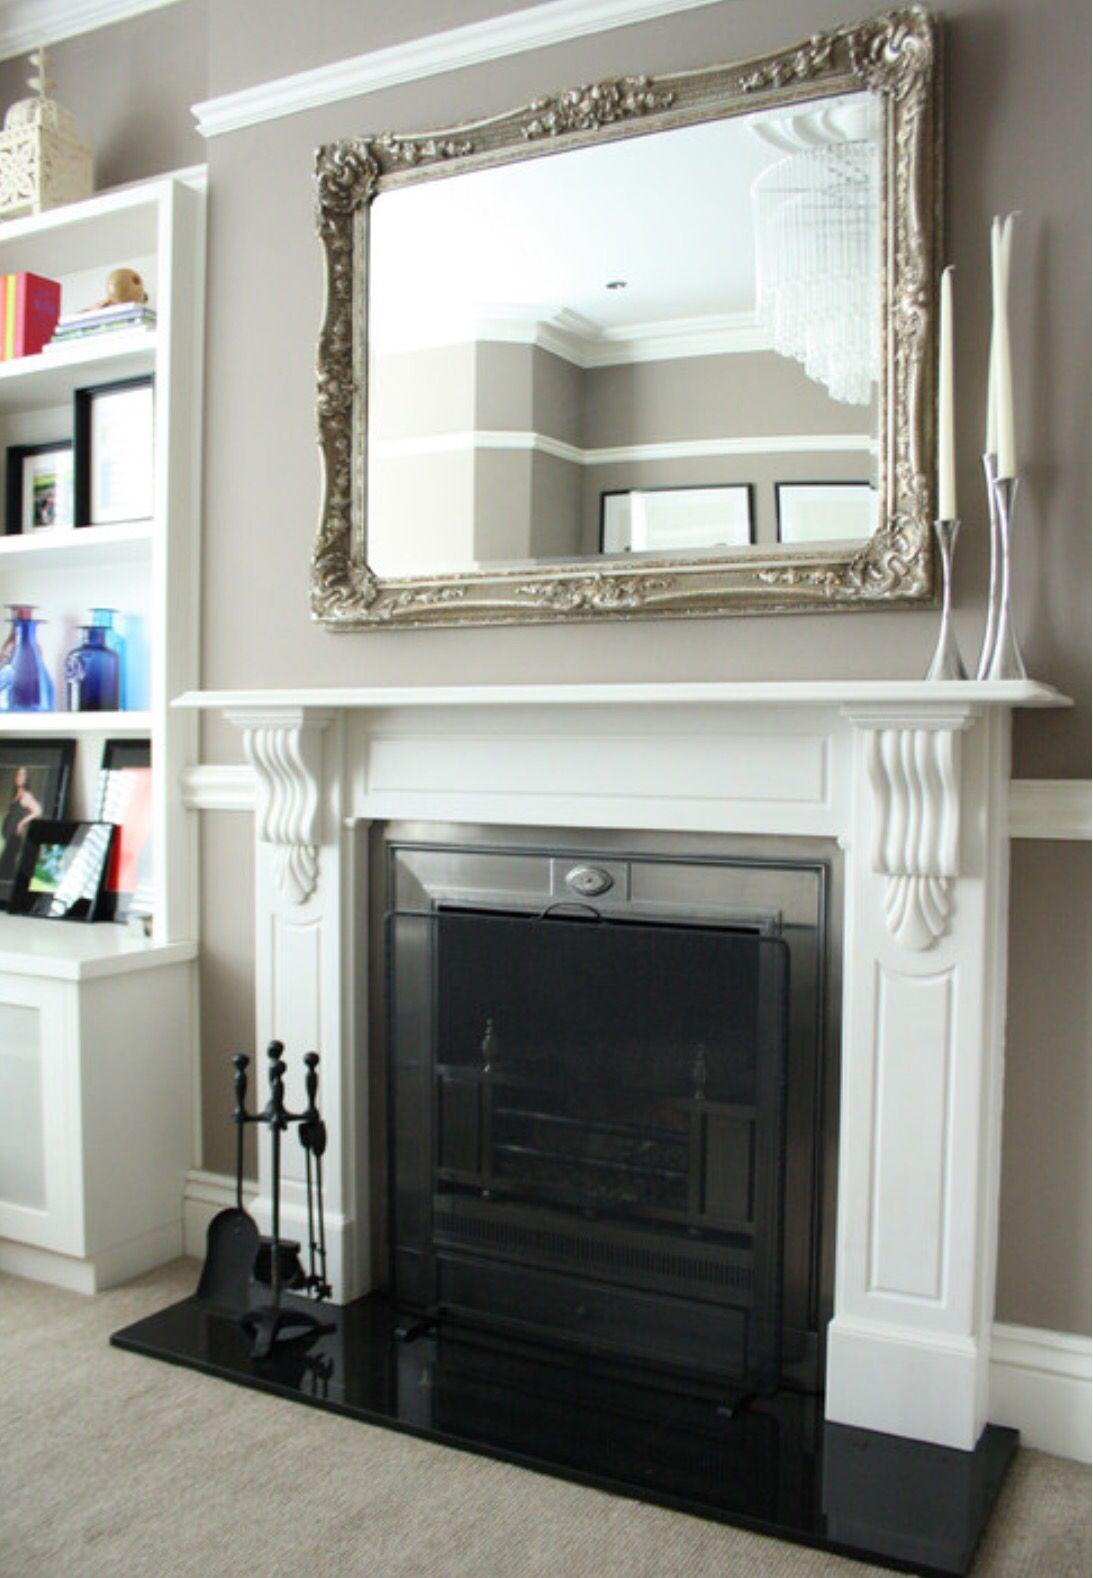 Lovely Mirror above fireplace | Home sweet home! | Pinterest  BE25